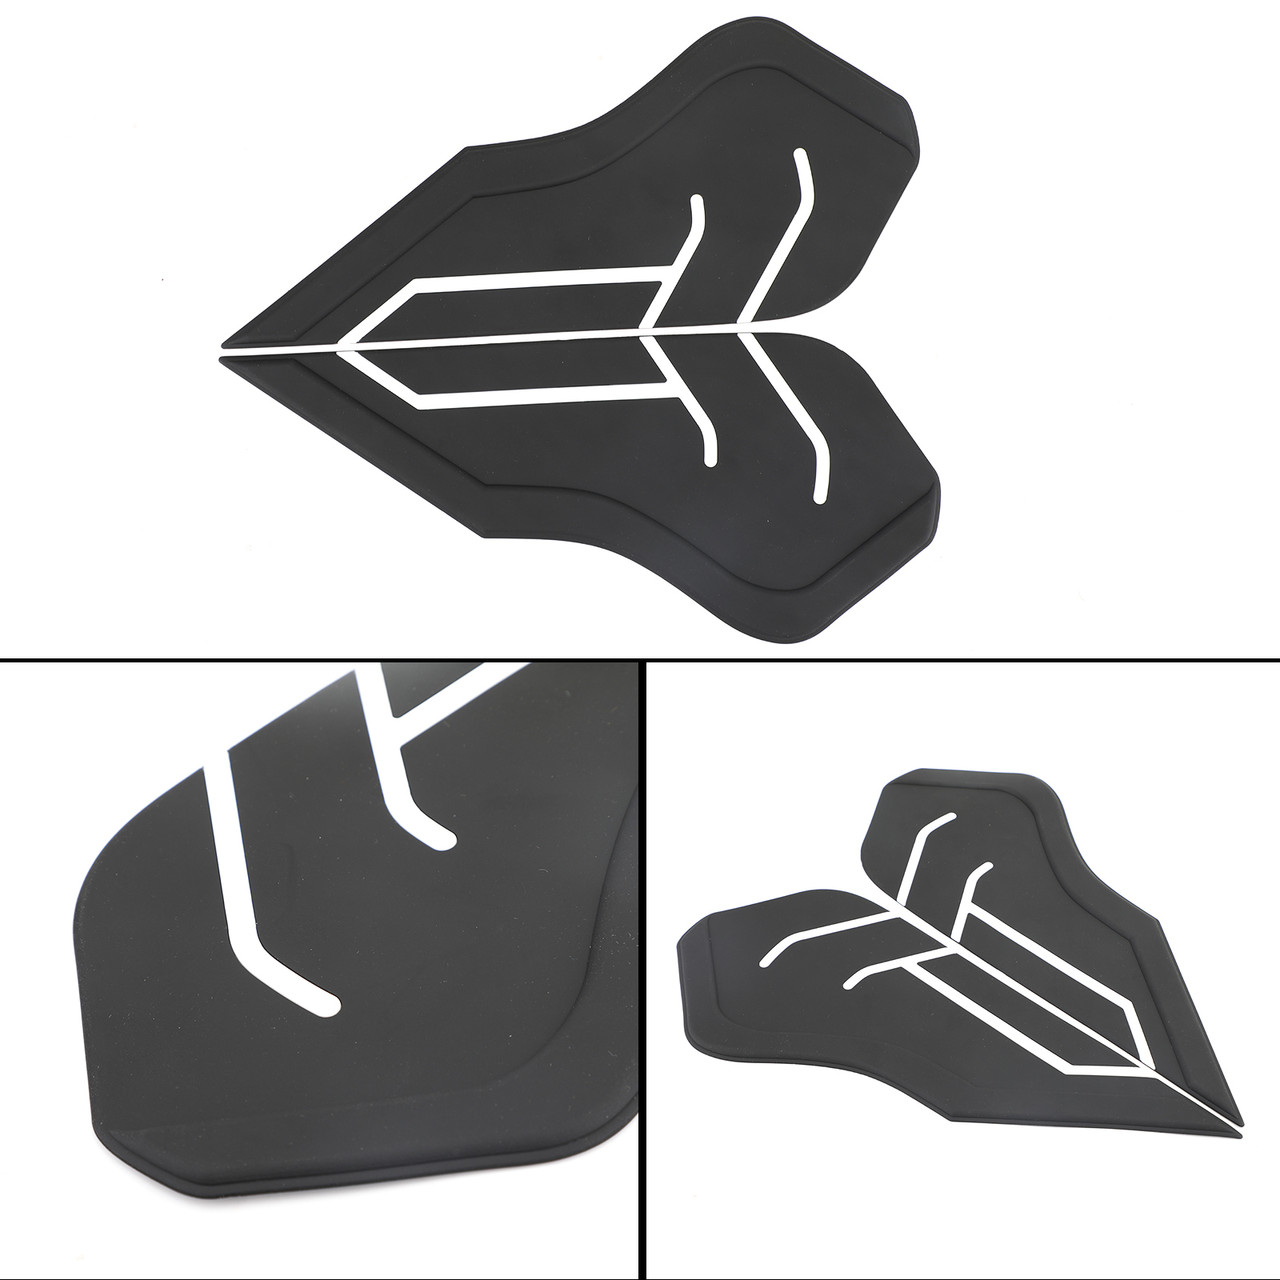 Tank Traction Pad Side Gas Knee Grip Protector Fit For Yamaha Tenere 700/XTZ700/XT700Z/T7/T700 18-20 Black